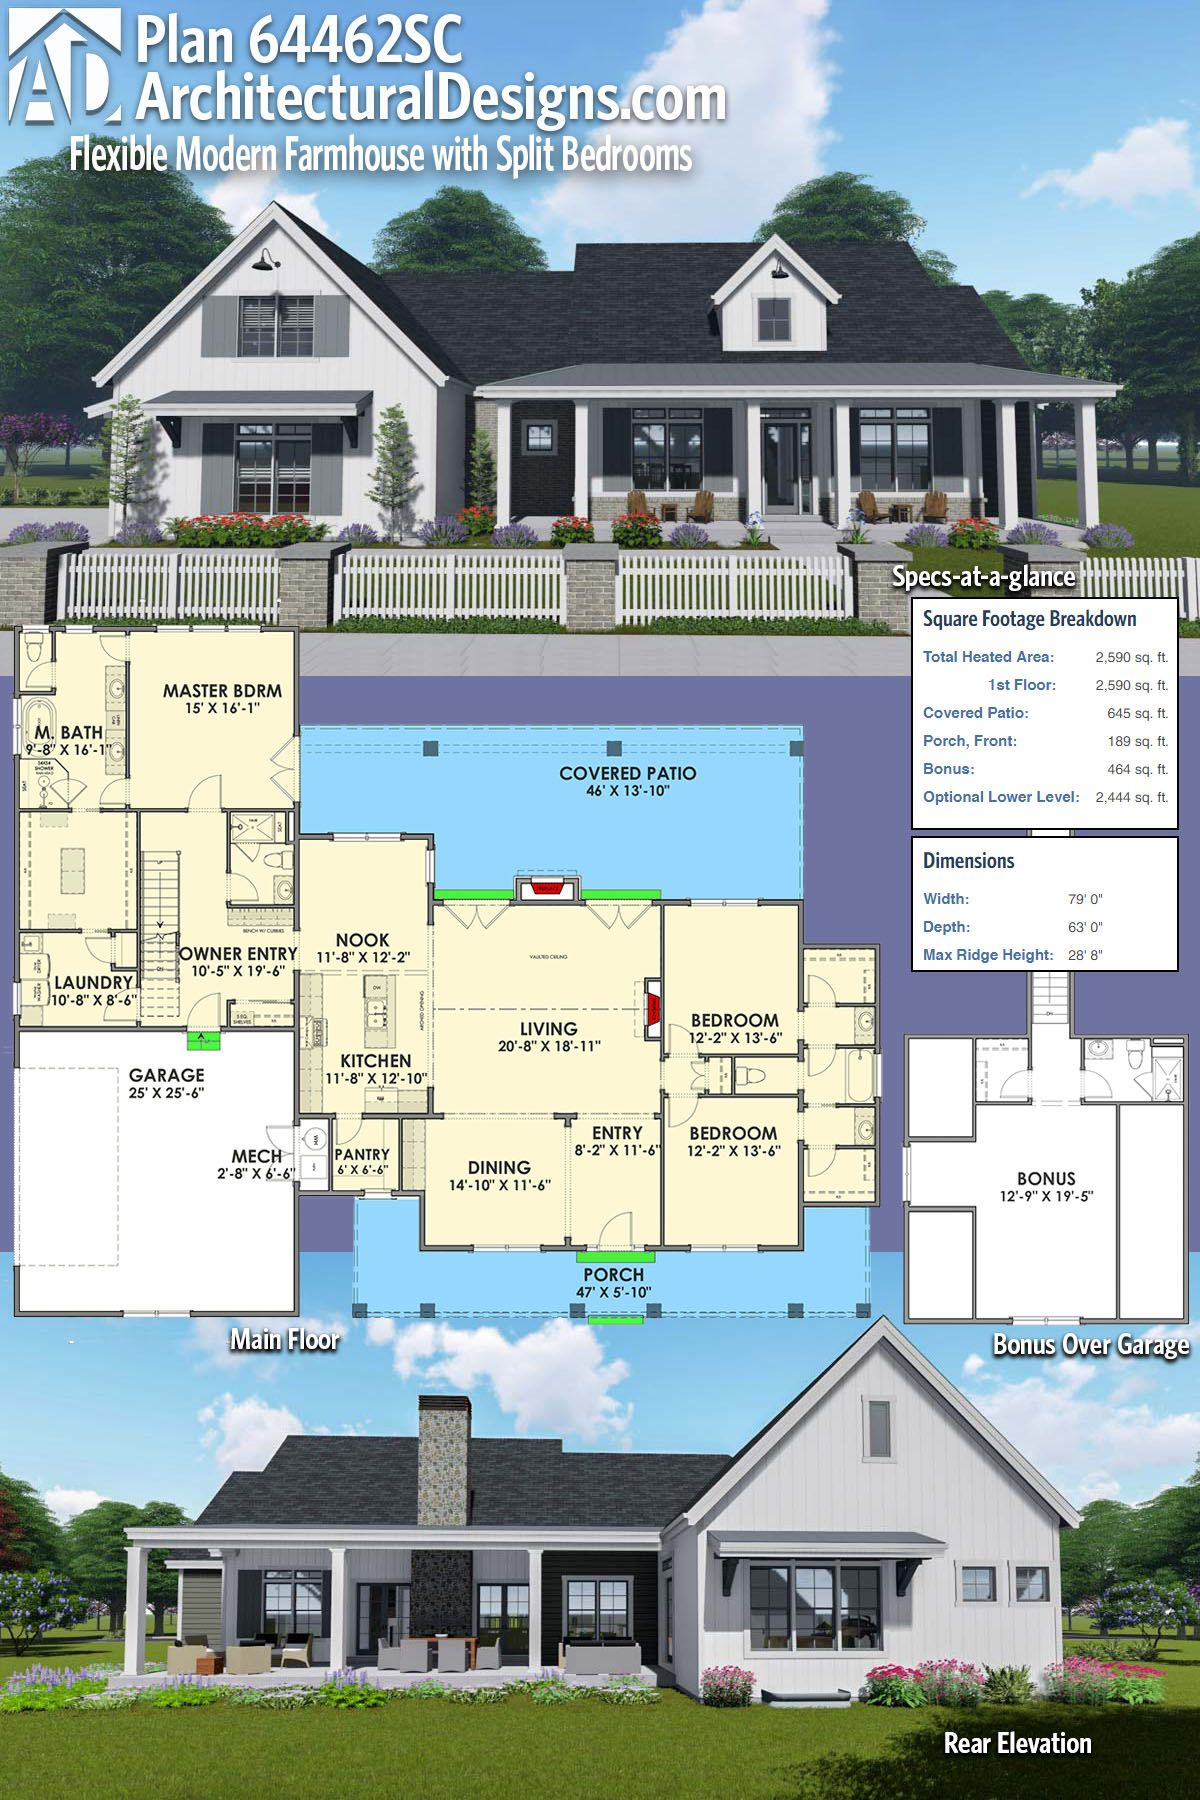 Plan 64462sc Flexible Modern Farmhouse With Split Bedrooms Farmhouse Plans Modern Farmhouse Plans House Plans